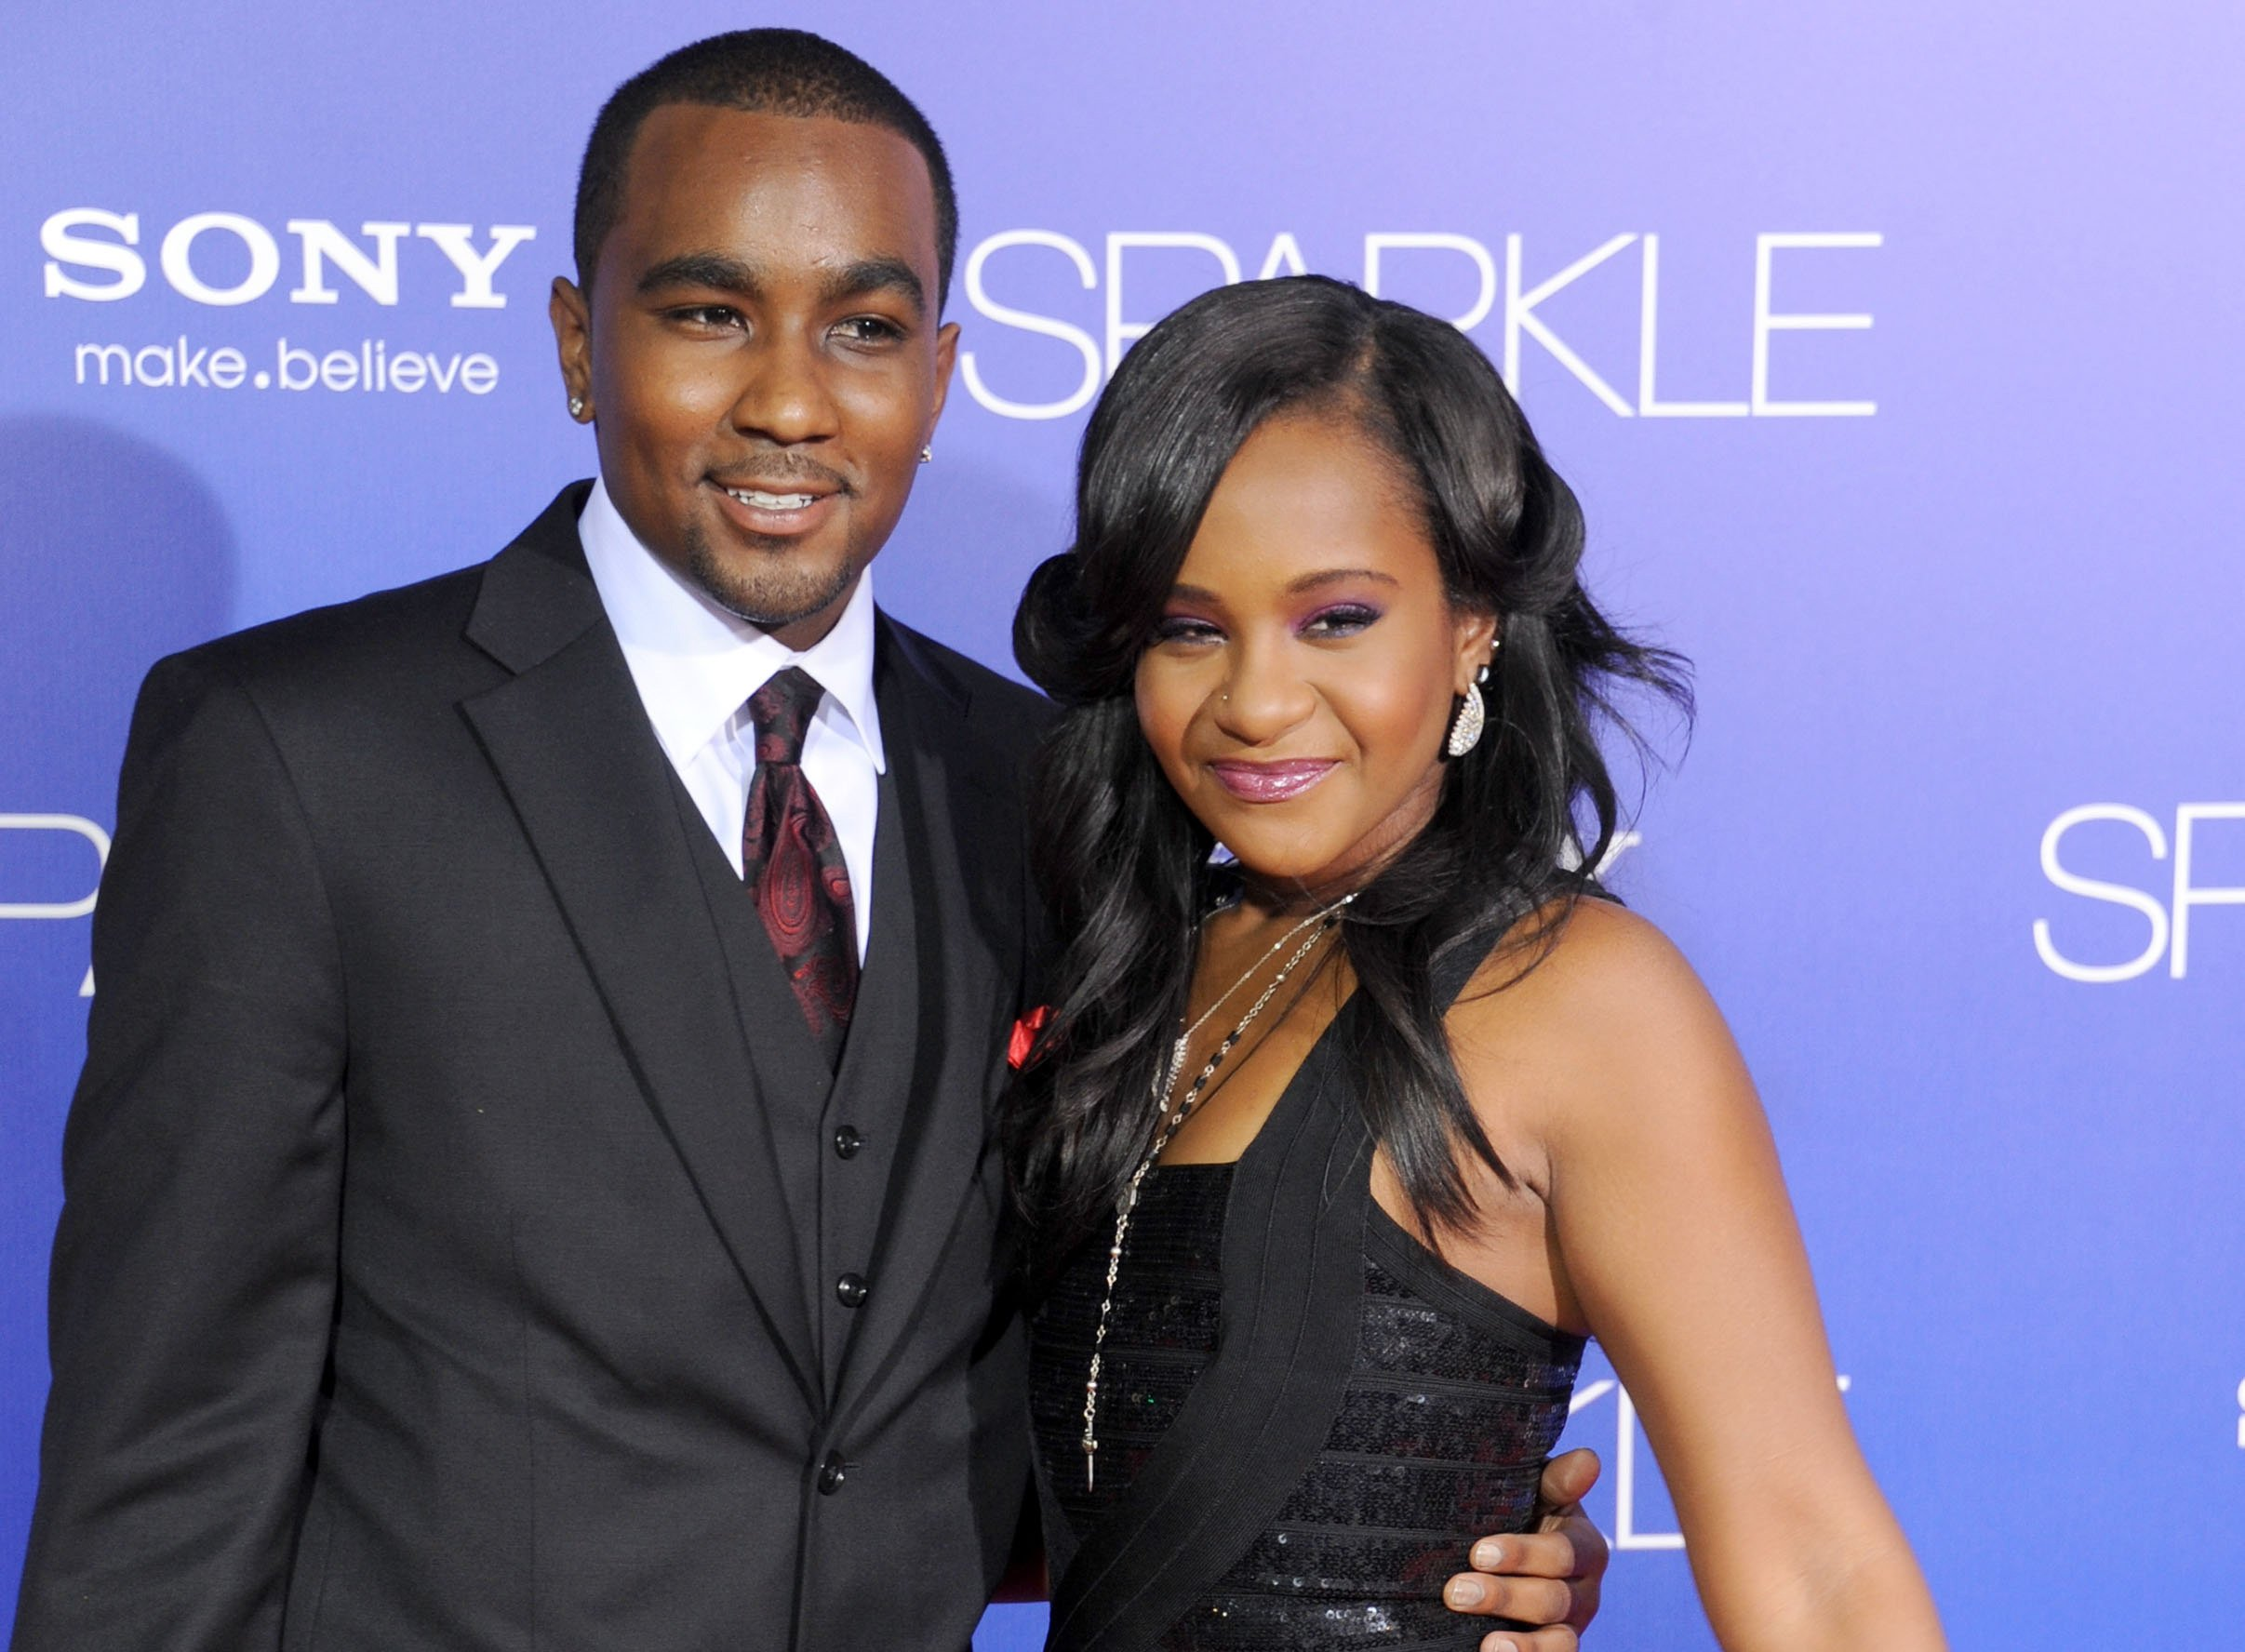 Bobbi Kristina Brown and Nick Gordon arrive at the Los Angeles premiere of 'Sparkle' at Grauman's Chinese Theatre on August 16, 2012 in Hollywood